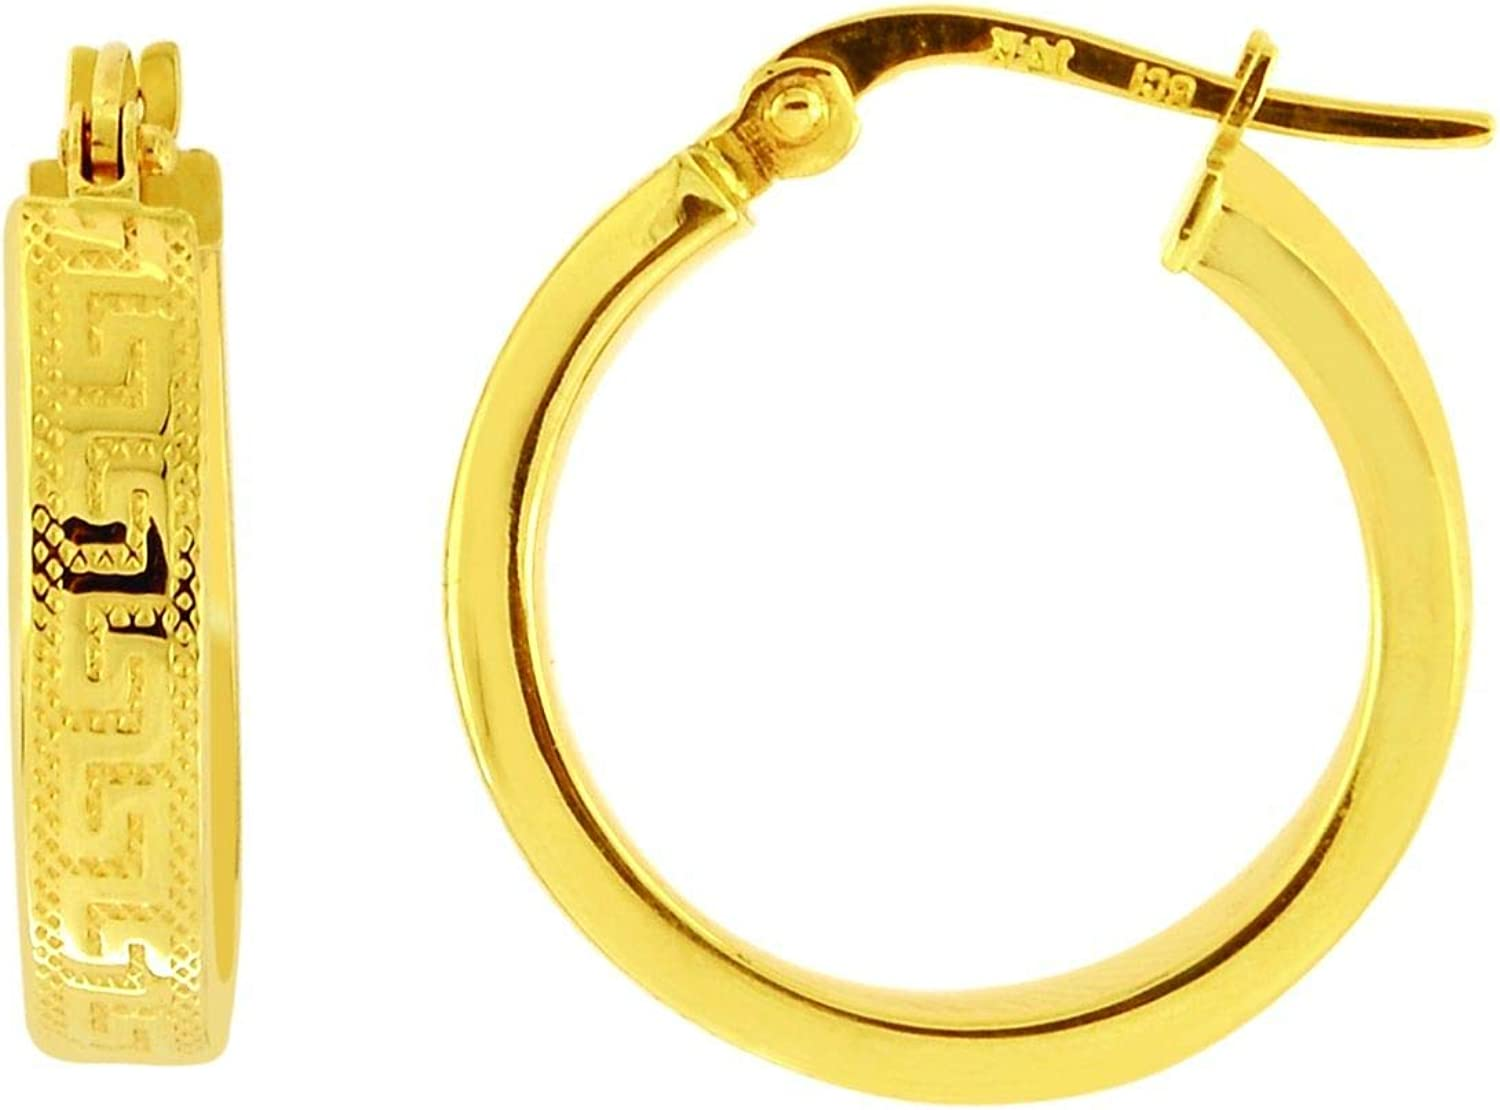 14K Yellow Gold Shiny Textured Flat Greek Key Small Hoop Earring with Hinged Clasp